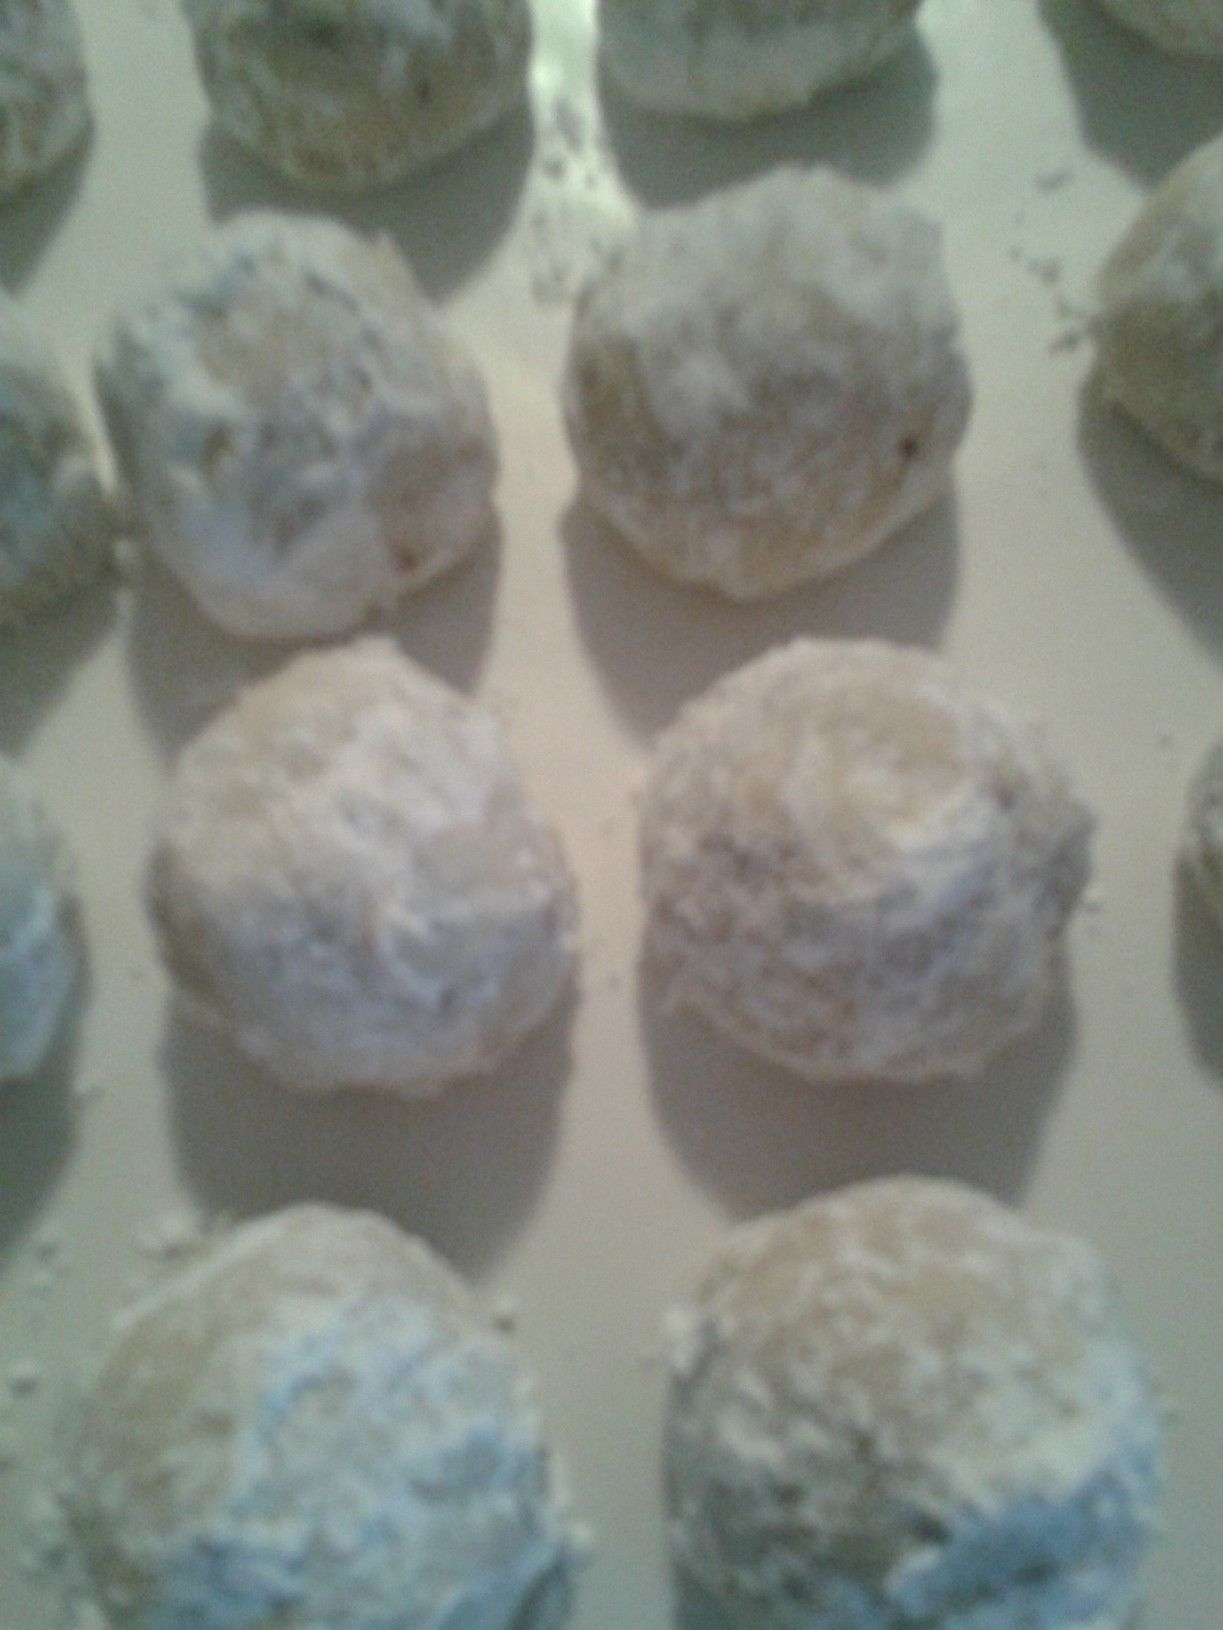 Snowball Cookies   2 c flour, 1/2 c powdered sugar, 1/8 tsp salt, 1 c butter, 1 tsp vanilla, 1 c chopped pecans, Hershey Kiss, powder sugar,   In large bowl, combine 1st three ingred. Using pastry blender or fork, cut in butter until mixture resembles coarse crumbs.  Add vanilla and nuts; mix to form smooth dough.  Wrap dough around Kiss.  Place on ungreased cookie sheet.  Bake 5-7 mins. or until set and light golden brown.  Cool 1 minute; remove from cookie sheet.  Roll in powder sugar…